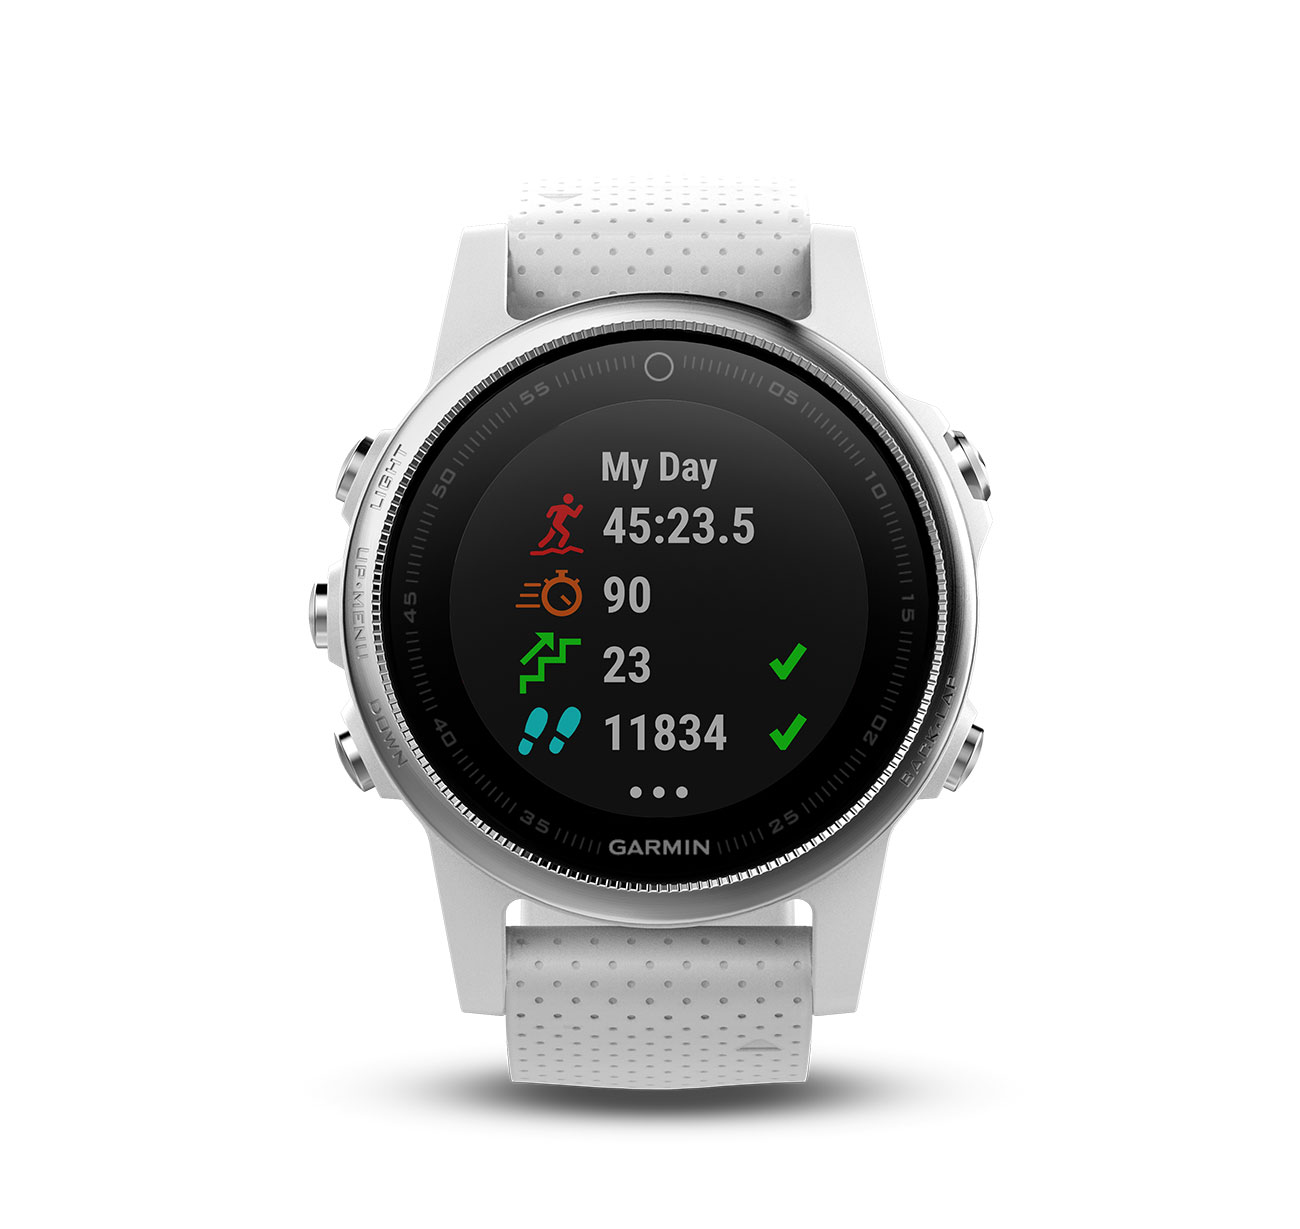 garmin fenix 5 neue gps multisport smartwatch mit kartendarstellung. Black Bedroom Furniture Sets. Home Design Ideas